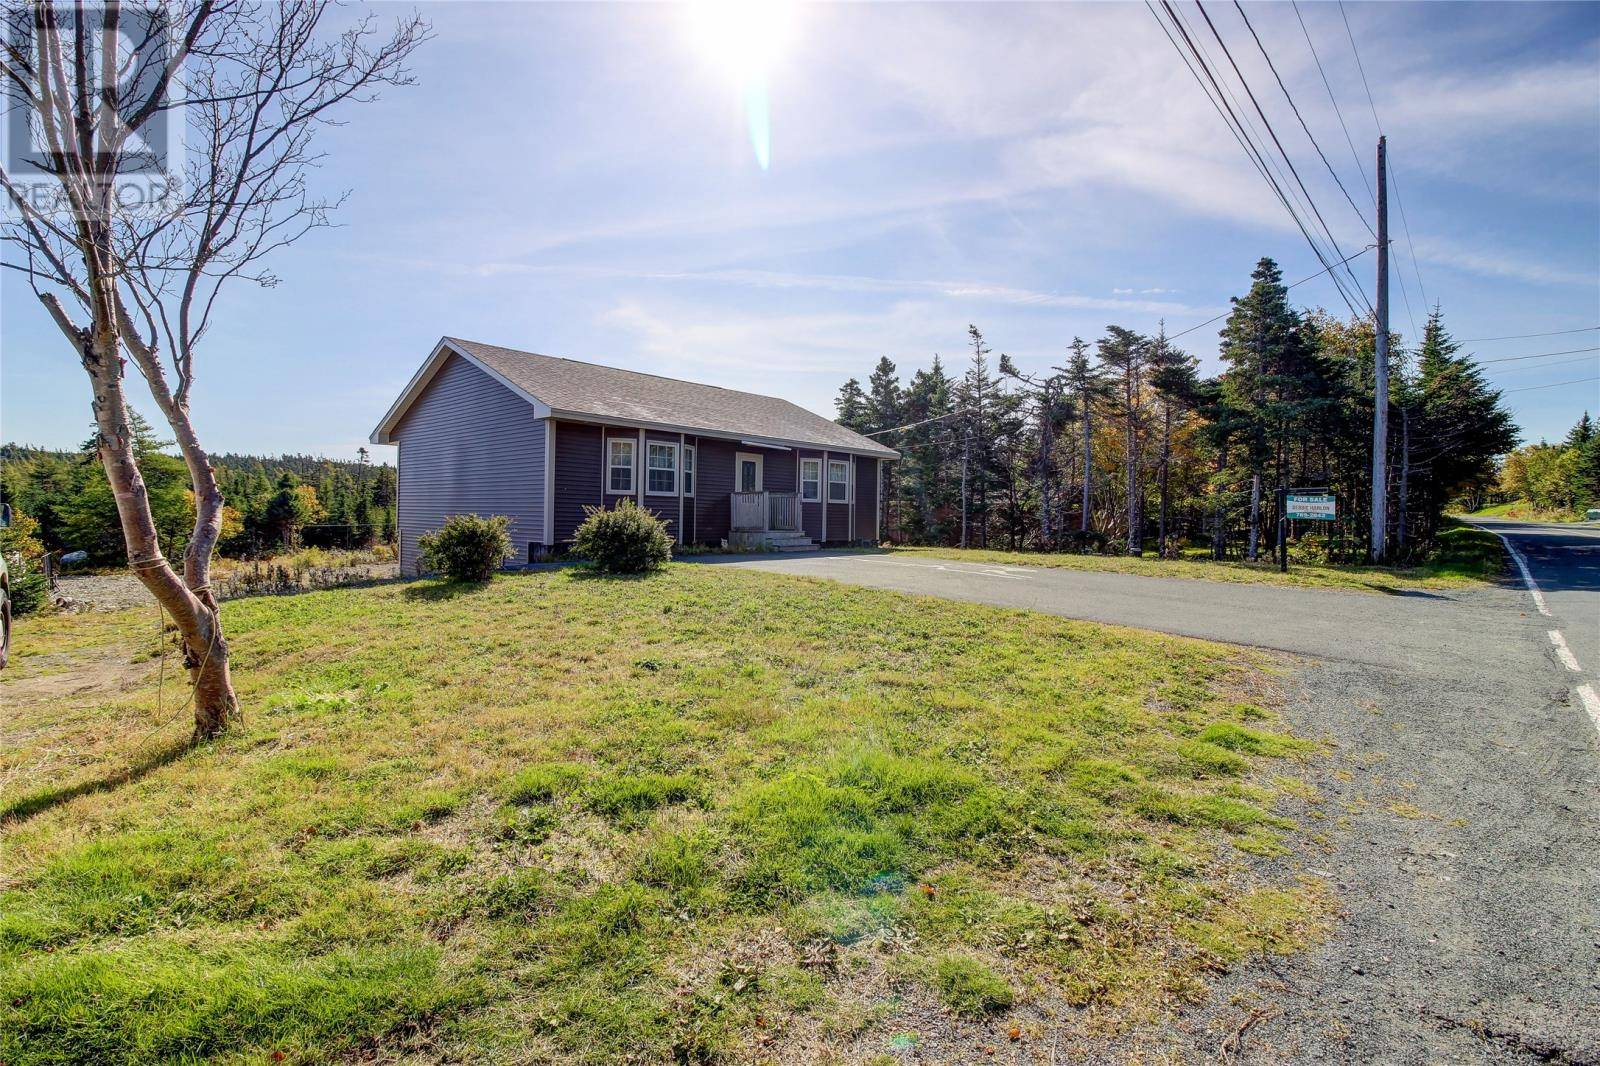 House for sale at 161 Western Gully Rd Portugal Cove, St Philips Newfoundland - MLS: 1205124